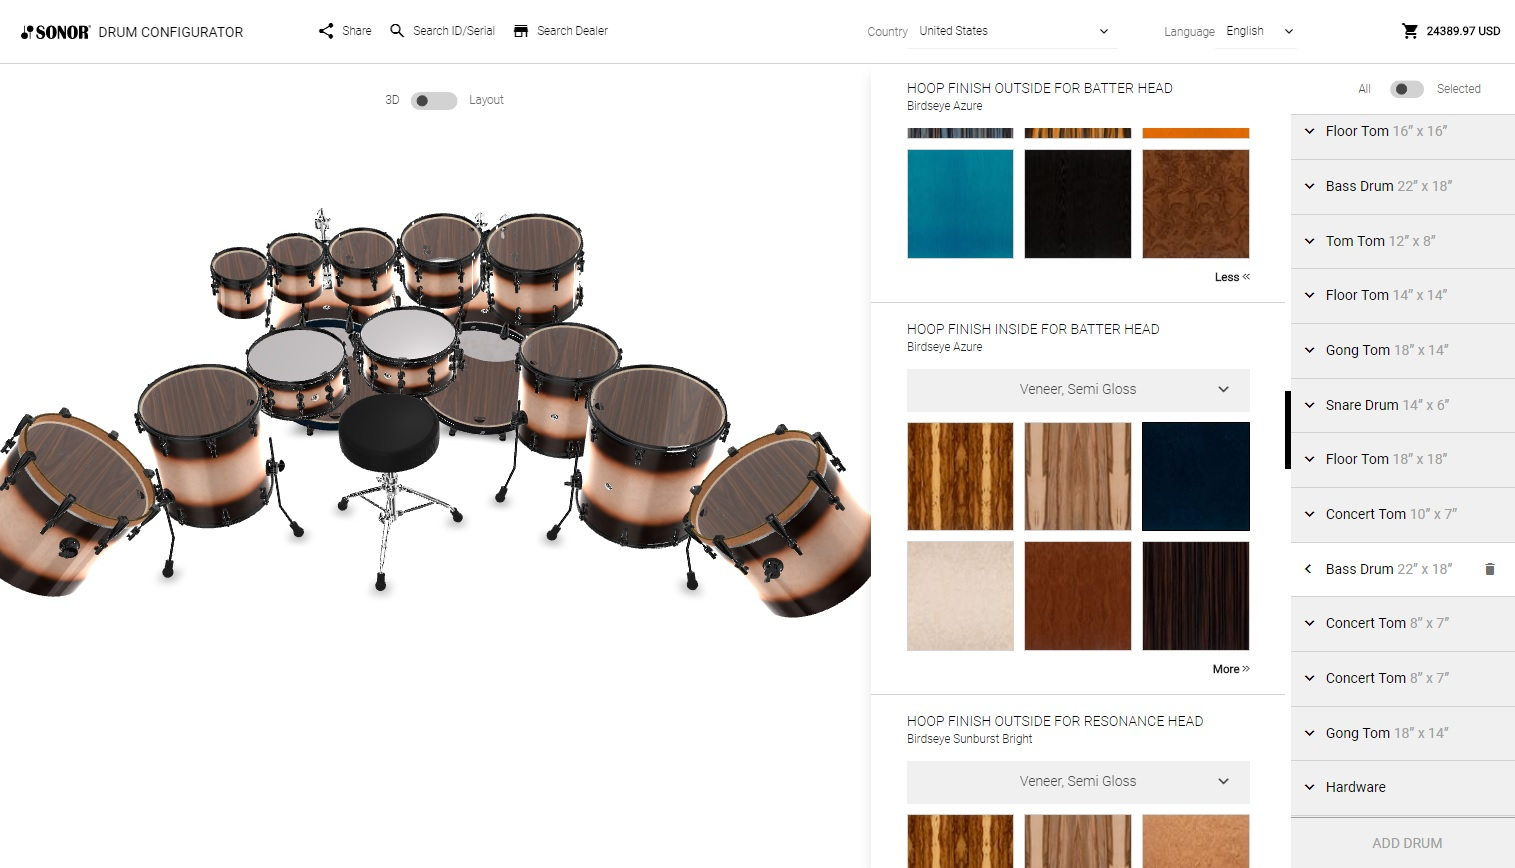 Sonor Drum Configurator Back View